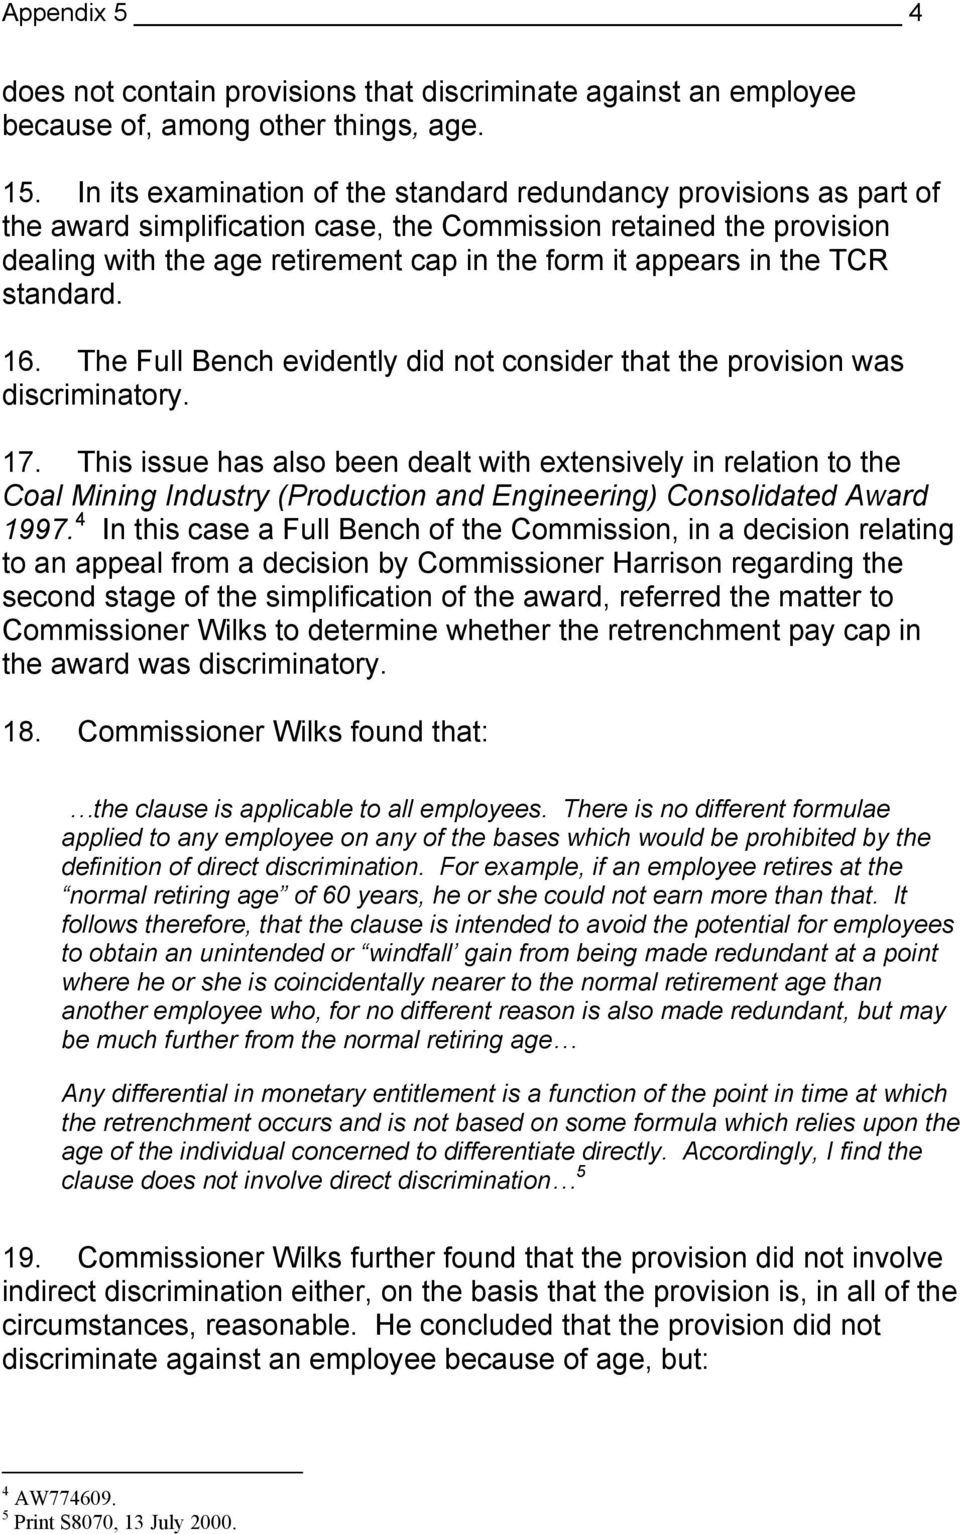 the TCR standard. 16. The Full Bench evidently did not consider that the provision was discriminatory. 17.